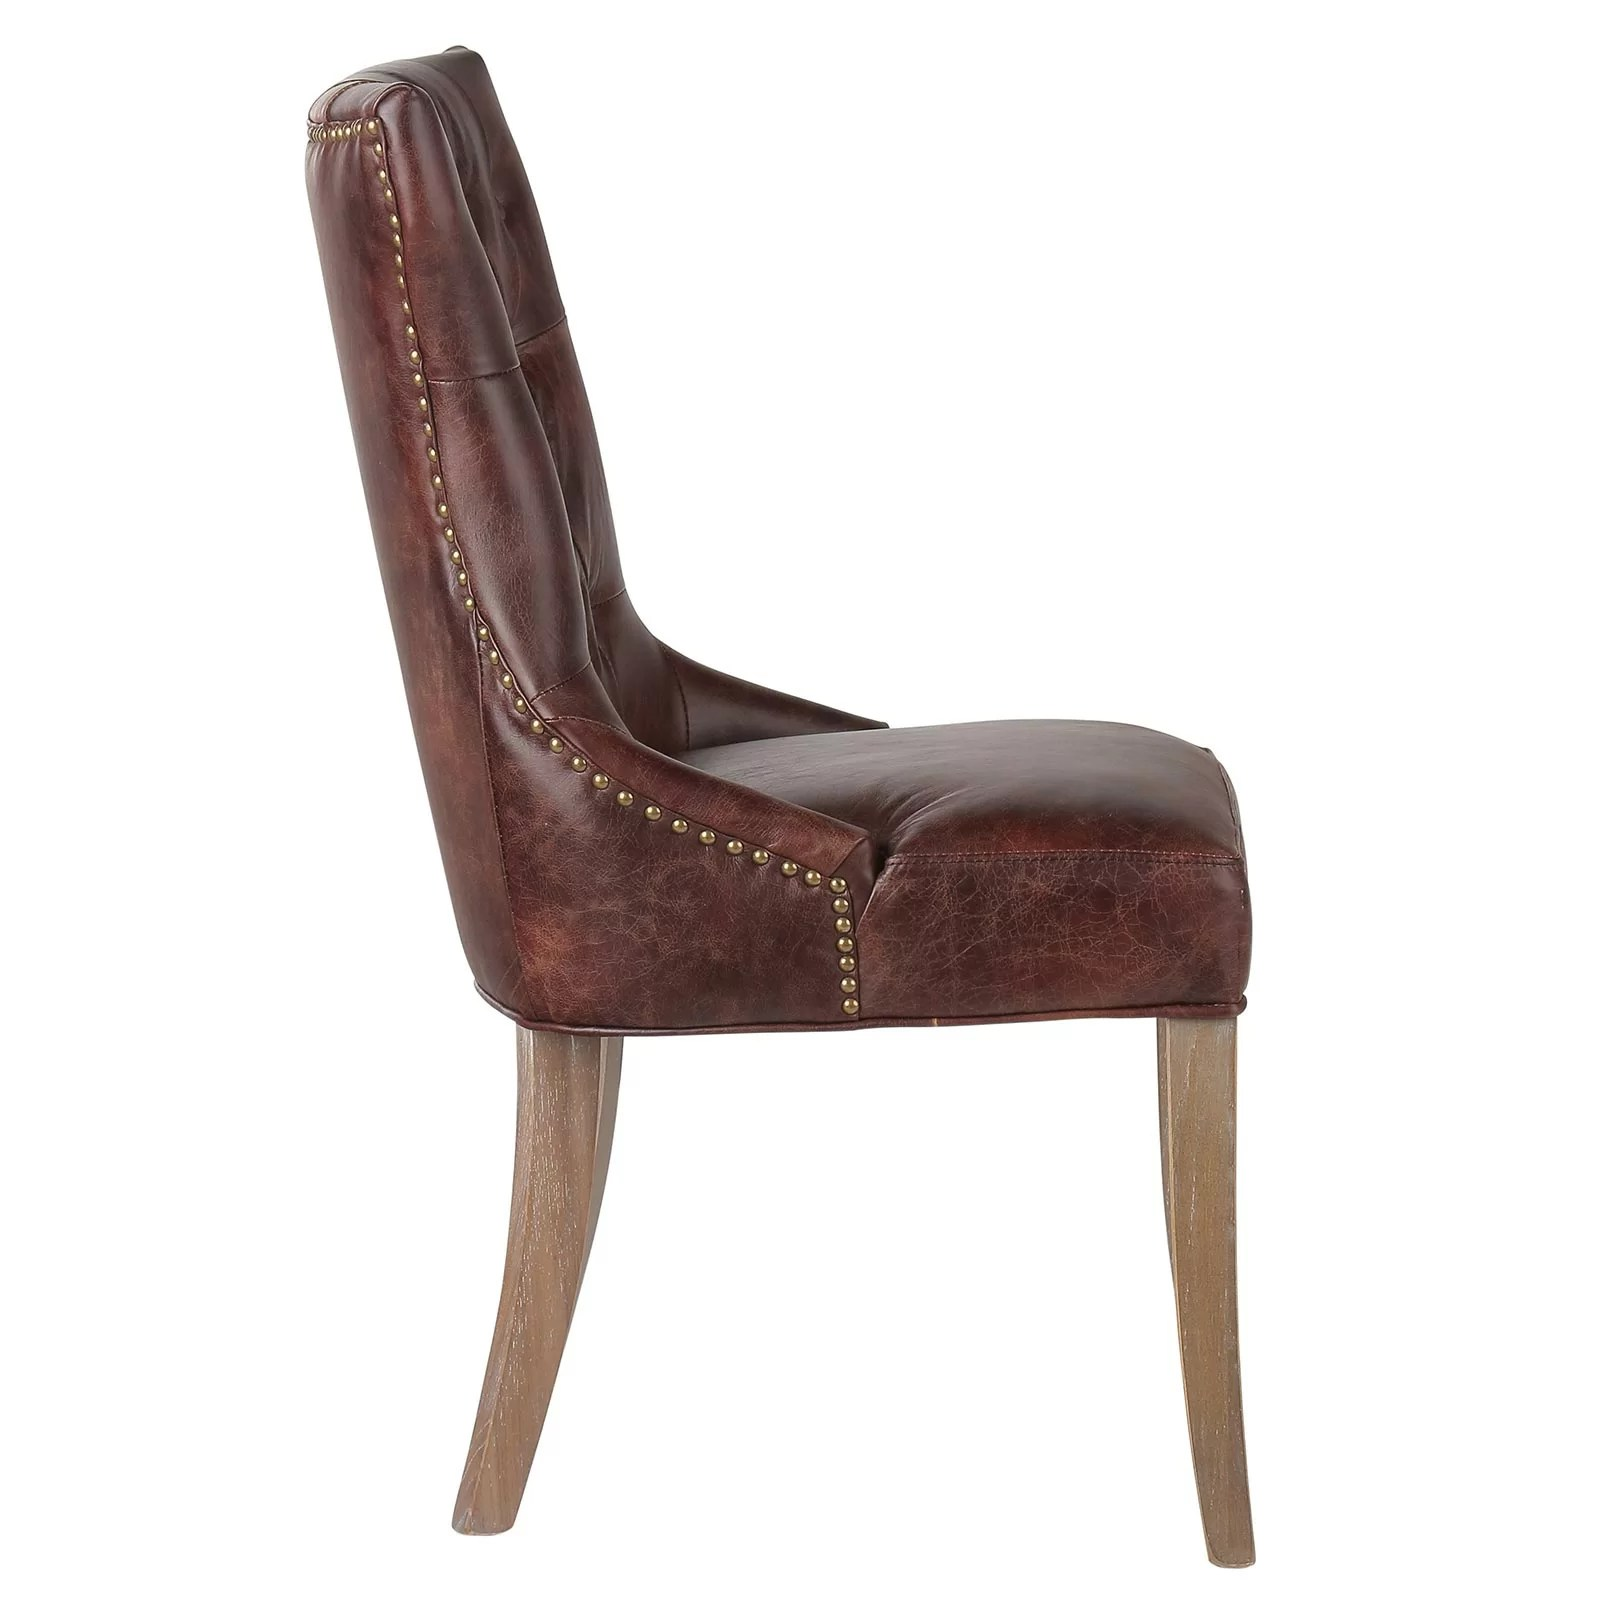 leather tufted dining chair fabrics for kitchen chairs joseph allen mustang genuine upholstered